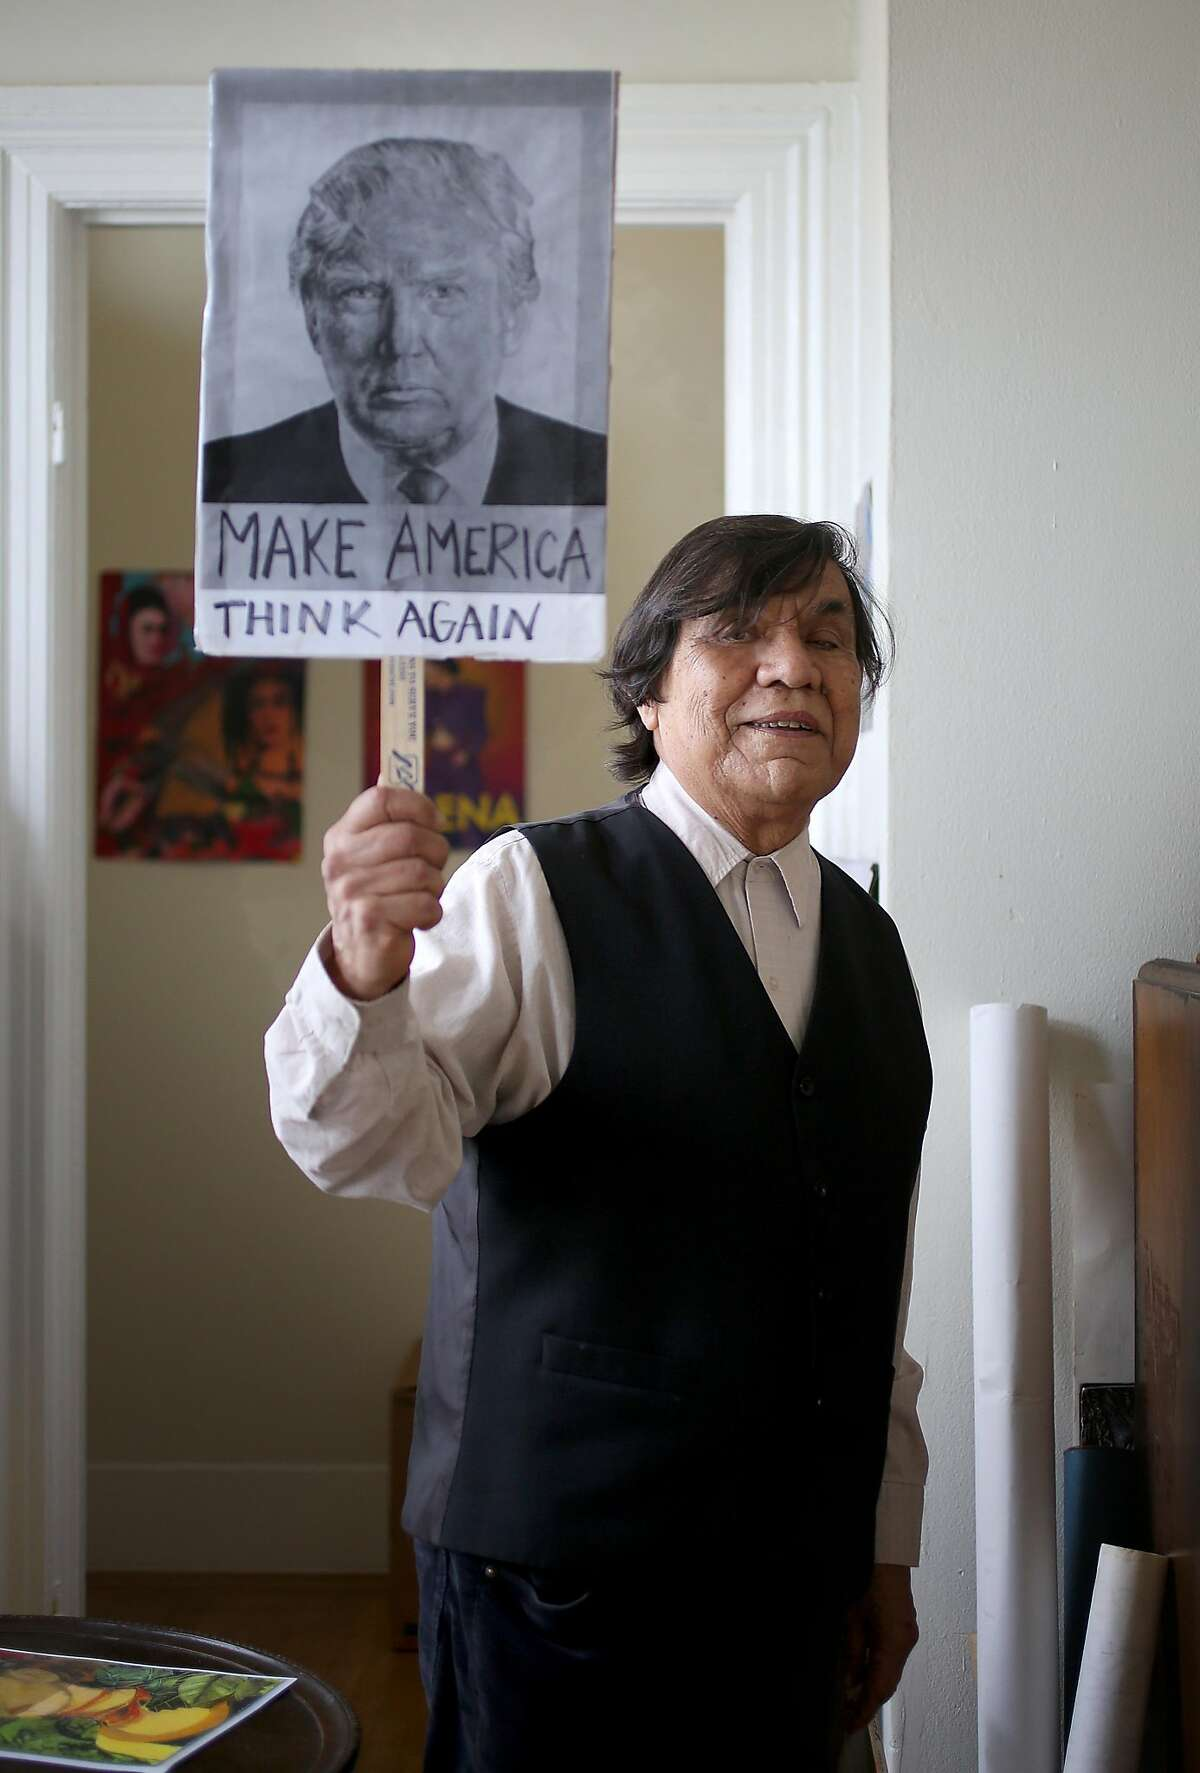 Ren� Ya�ez who popularized Dia de los Muertos and Frida Kahlo shows some of his work at home on Friday, December 15, 2017, in San Francisco, Ca.